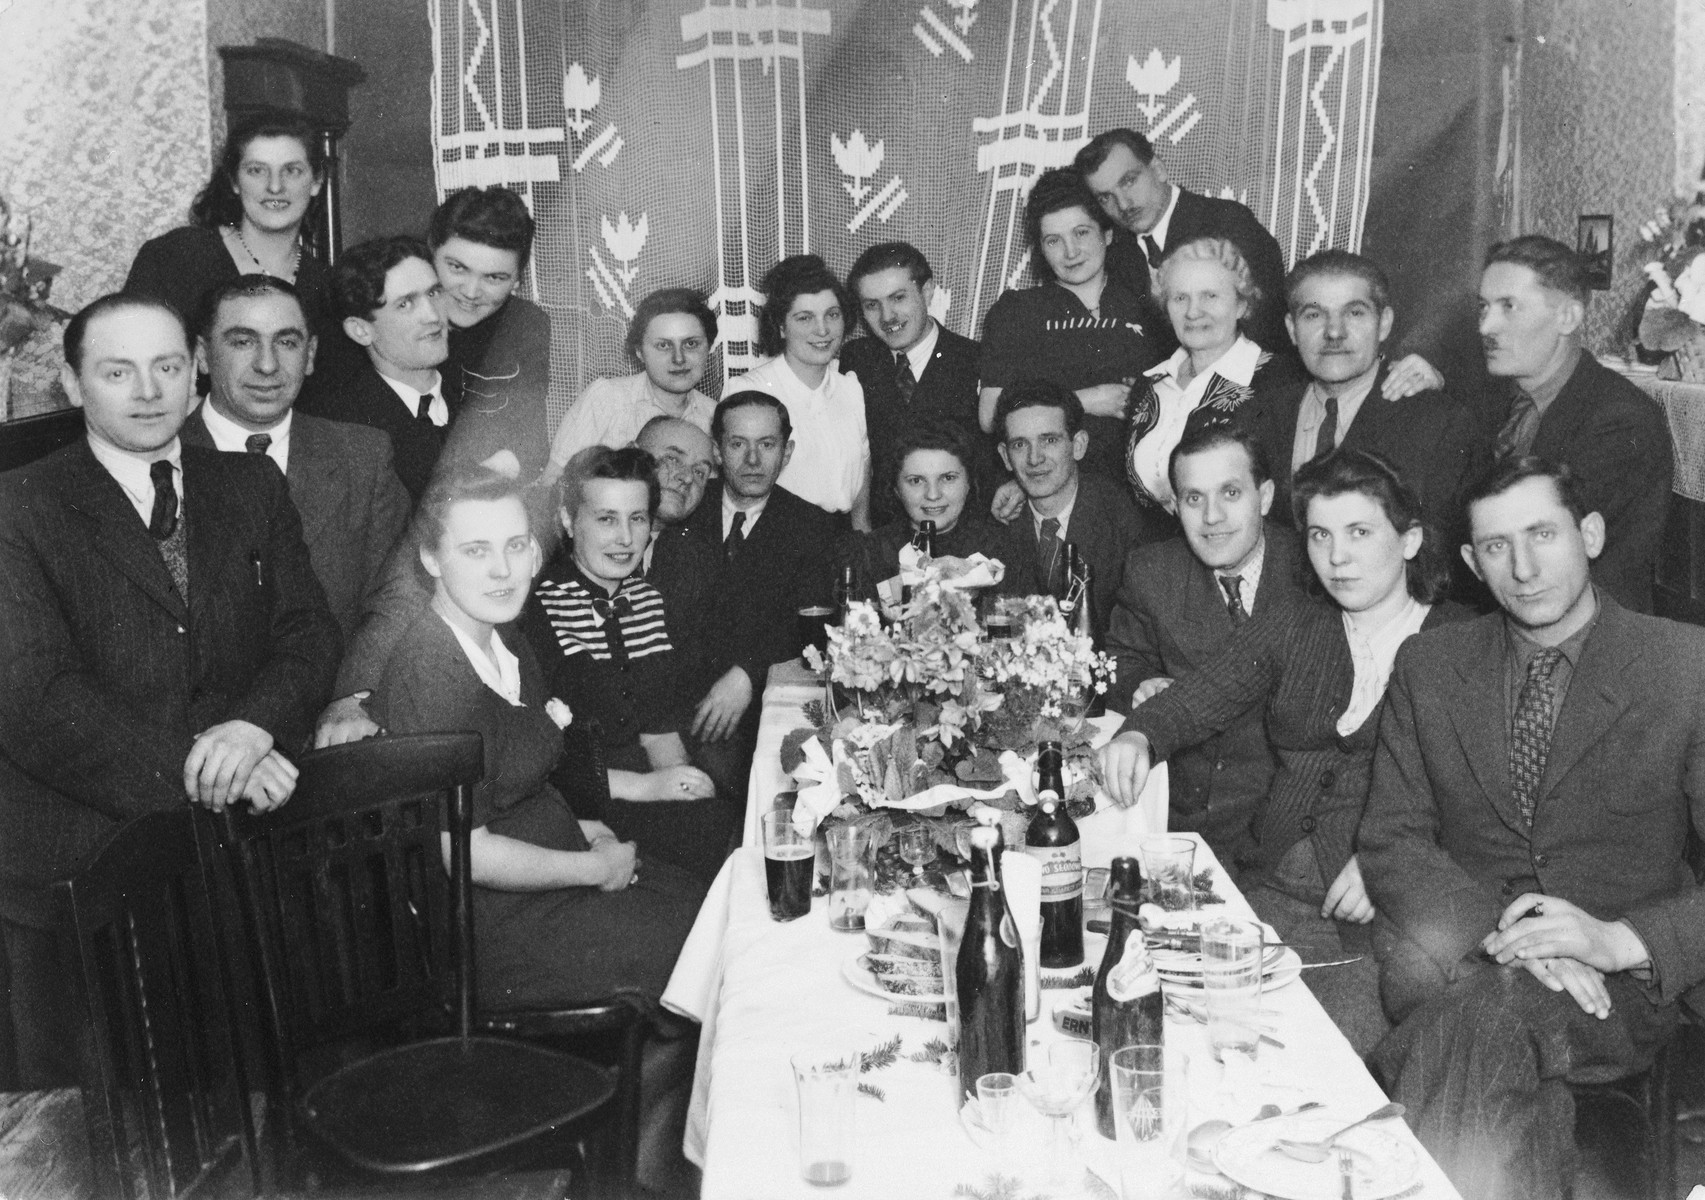 Family and friends of Bluma Kleinhandler and Zygmunt Godzinski celebrate their wedding in Chorzow, Poland.  Among those pictured are Tola Becker (standing eighth from the right), Sara (Zilberberg) Kleinhandler (wife of Moshe, standing seventh from the right), Moshe Kleinhandler (standing sixth from the right), Bluma Kleinhandler (seated at the head of the table), Zygmunt Godzinski (seated next to Bluma), Chaya Kleinhandler (standing third from the right), Chaim Kleinhandler (standing second from the right).